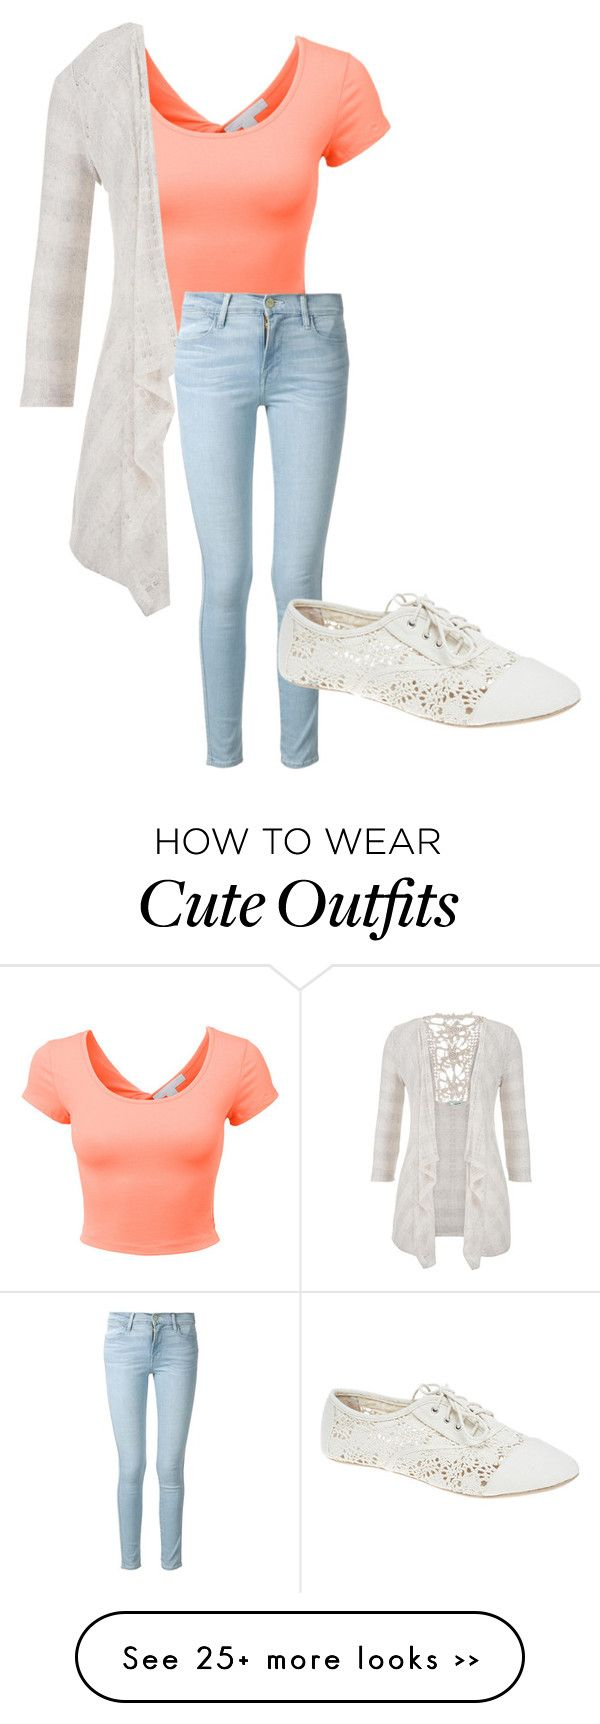 """""""Cute Outfit"""" by grier2000 on Polyvore"""